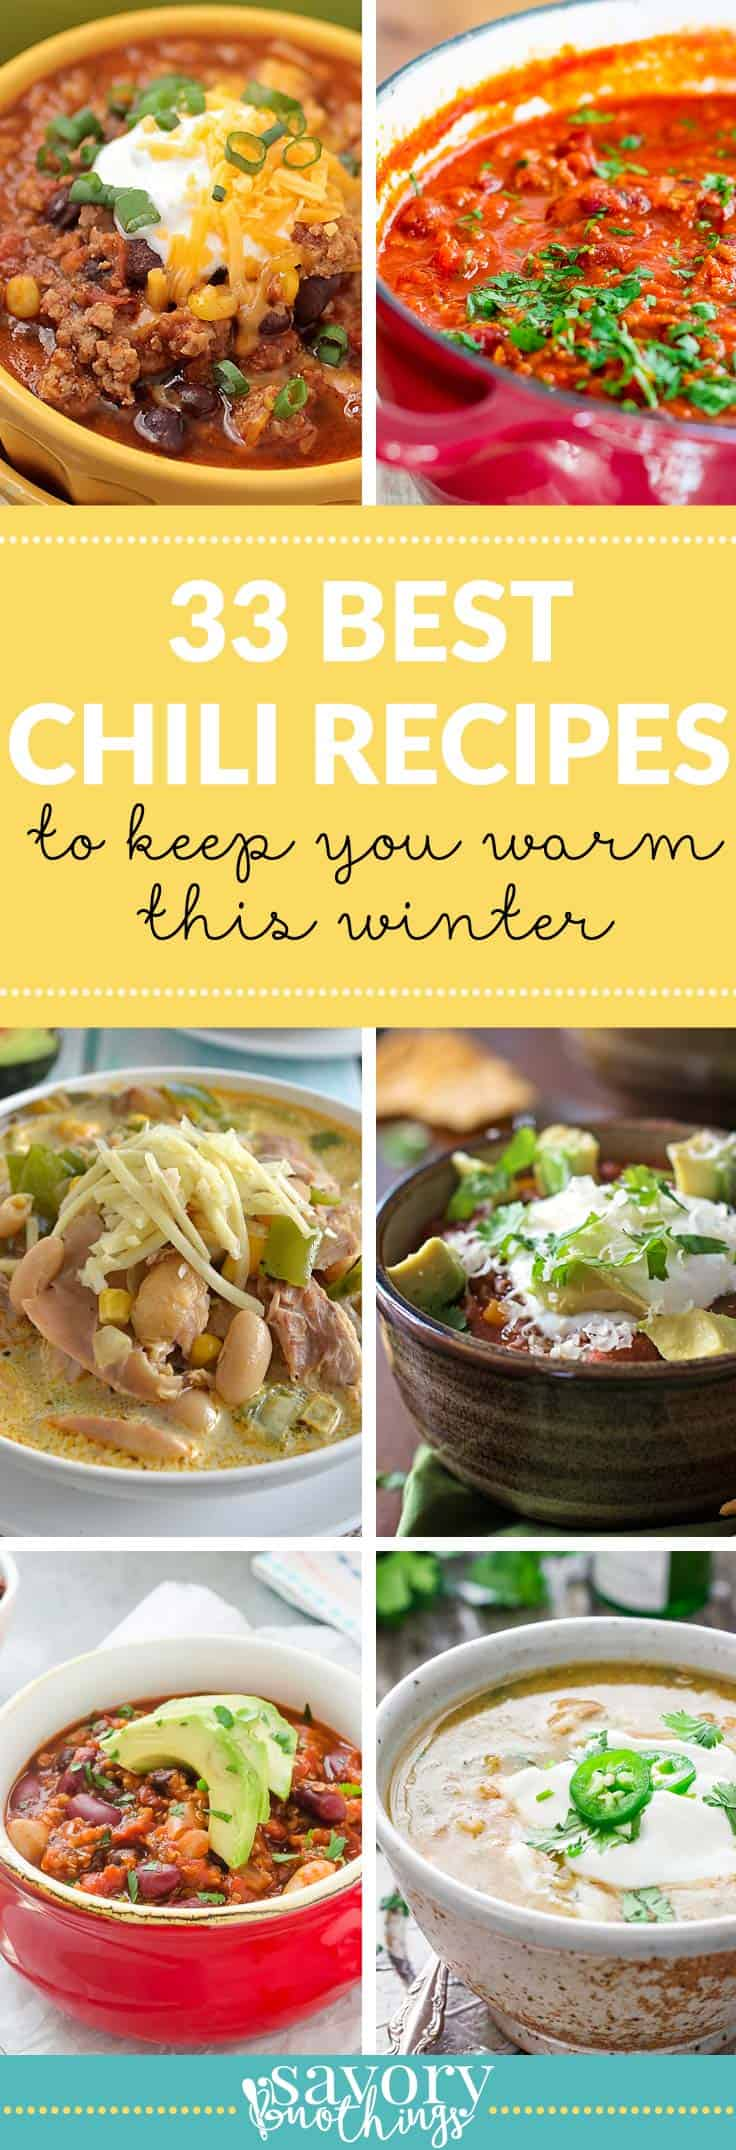 Who doesn't love a big pot of hot chili on a cold winter night? These are some of the best chili recipes from around the internet!